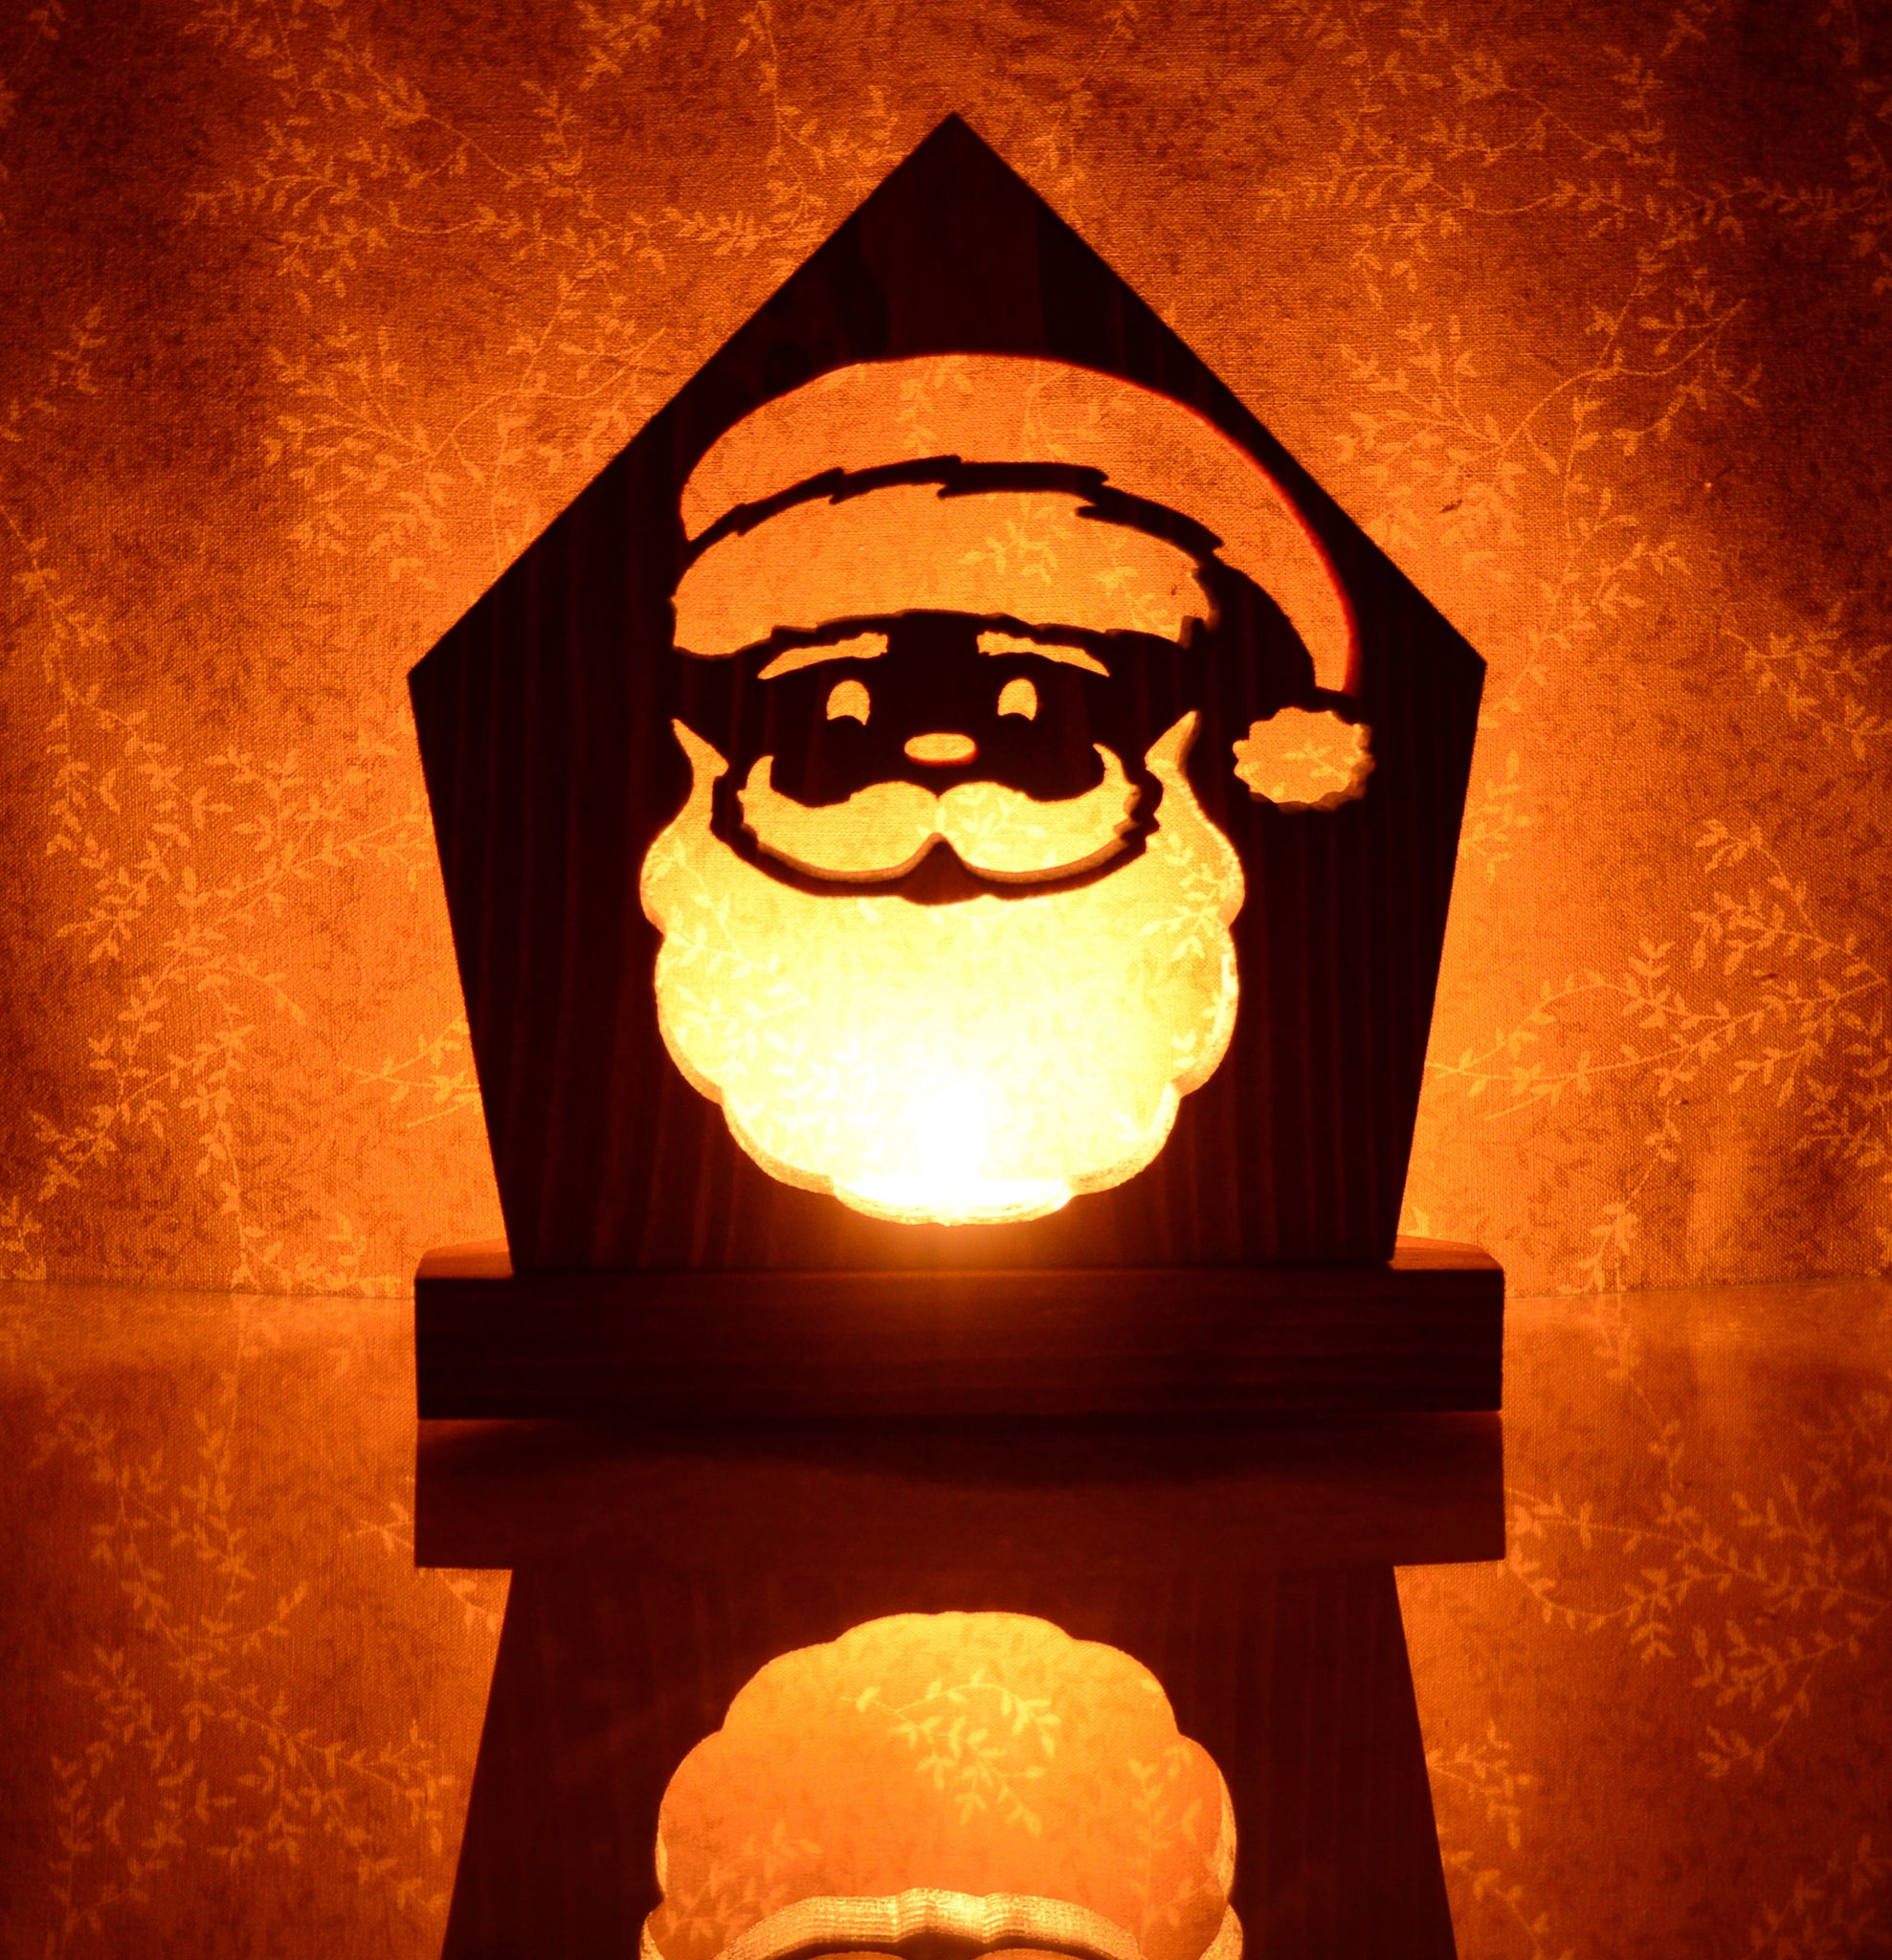 SANTA CLAUS Holiday Keepsake Tealight Candle Holder - Unique Christmas Home Decor Gift